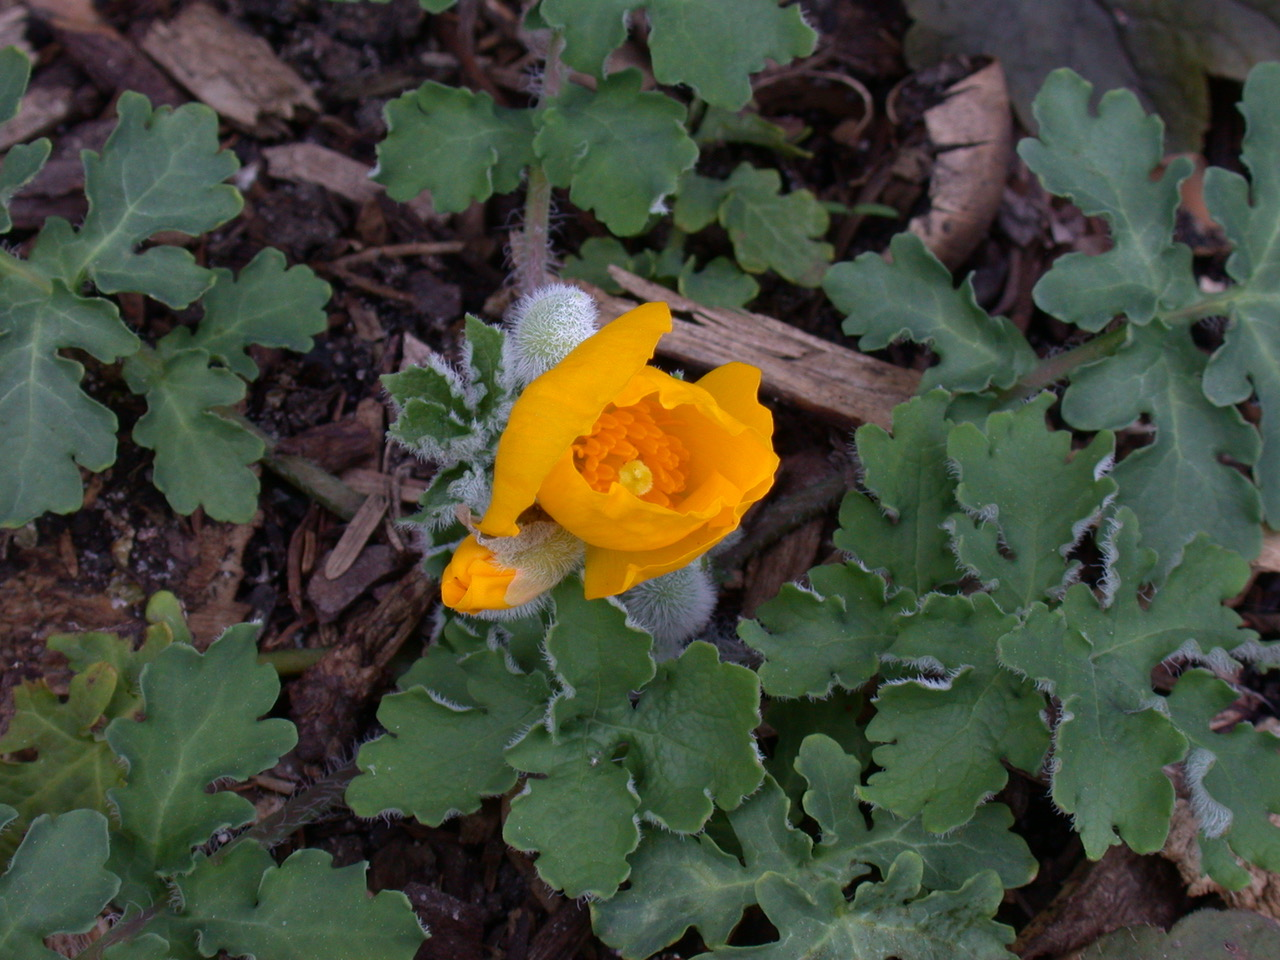 The Scientific Name is Stylophorum diphyllum. You will likely hear them called Celandine-poppy, Yellow Wood Poppy. This picture shows the Leaves, buds, and opening flower of Stylophorum diphyllum